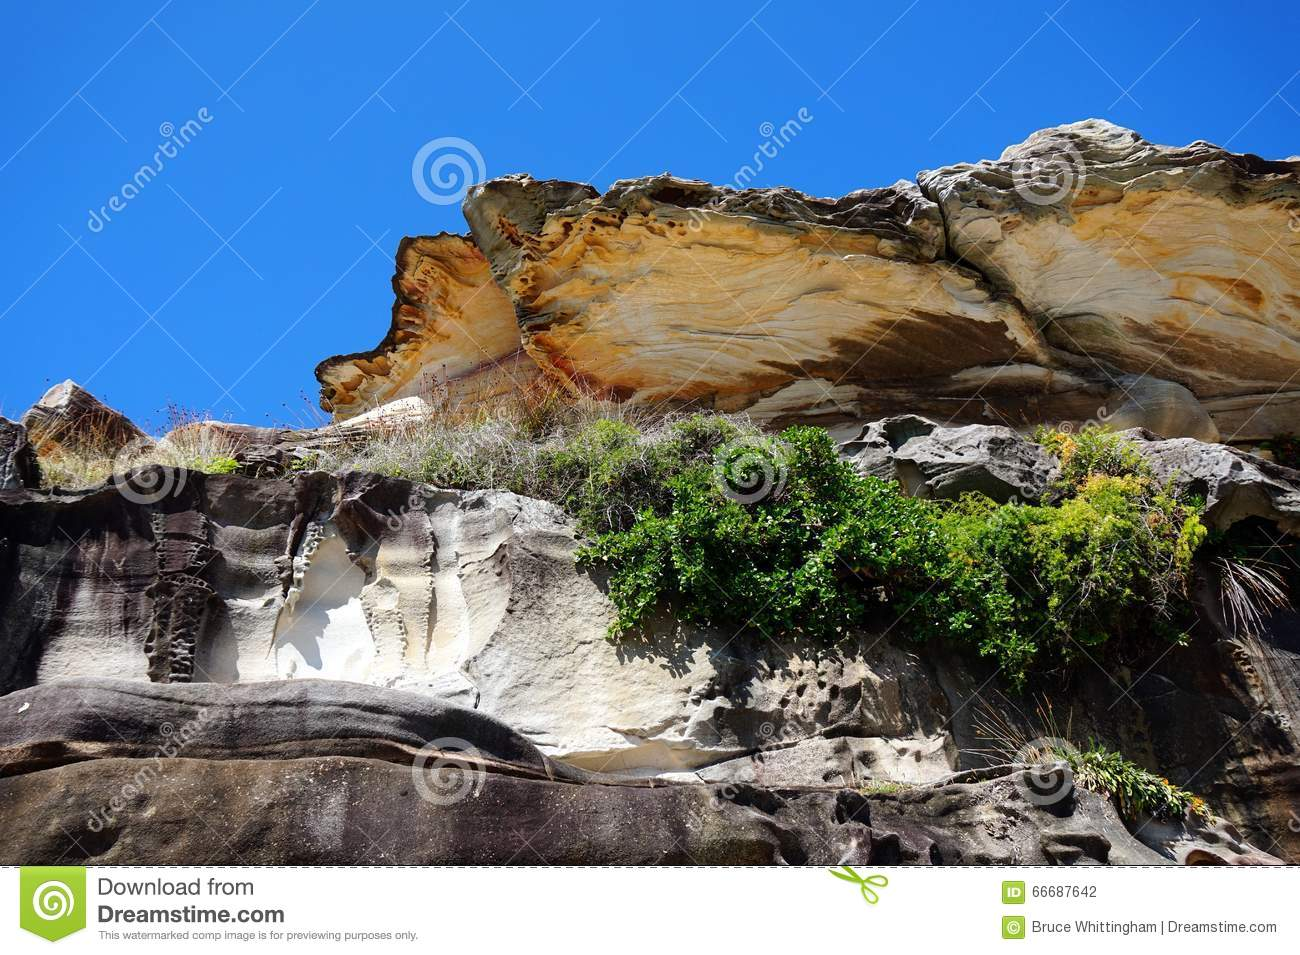 Side Sandstone Cliffs And Rocks Weathered By Wind And Water Erosion